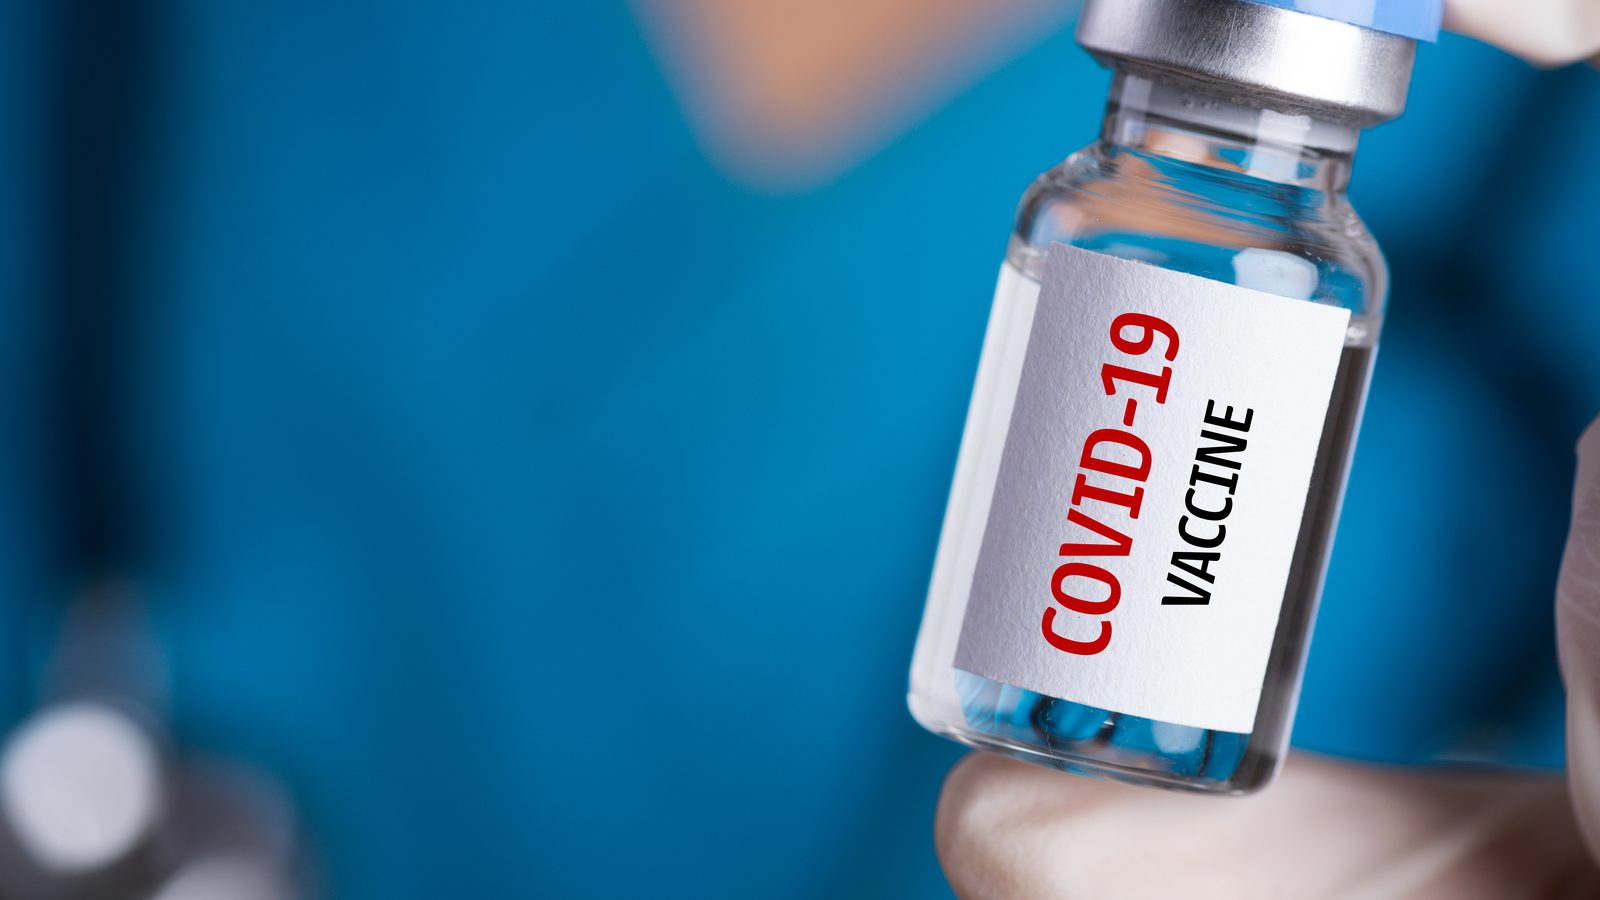 Phase 1B Covid Vaccination Appointments are now available online